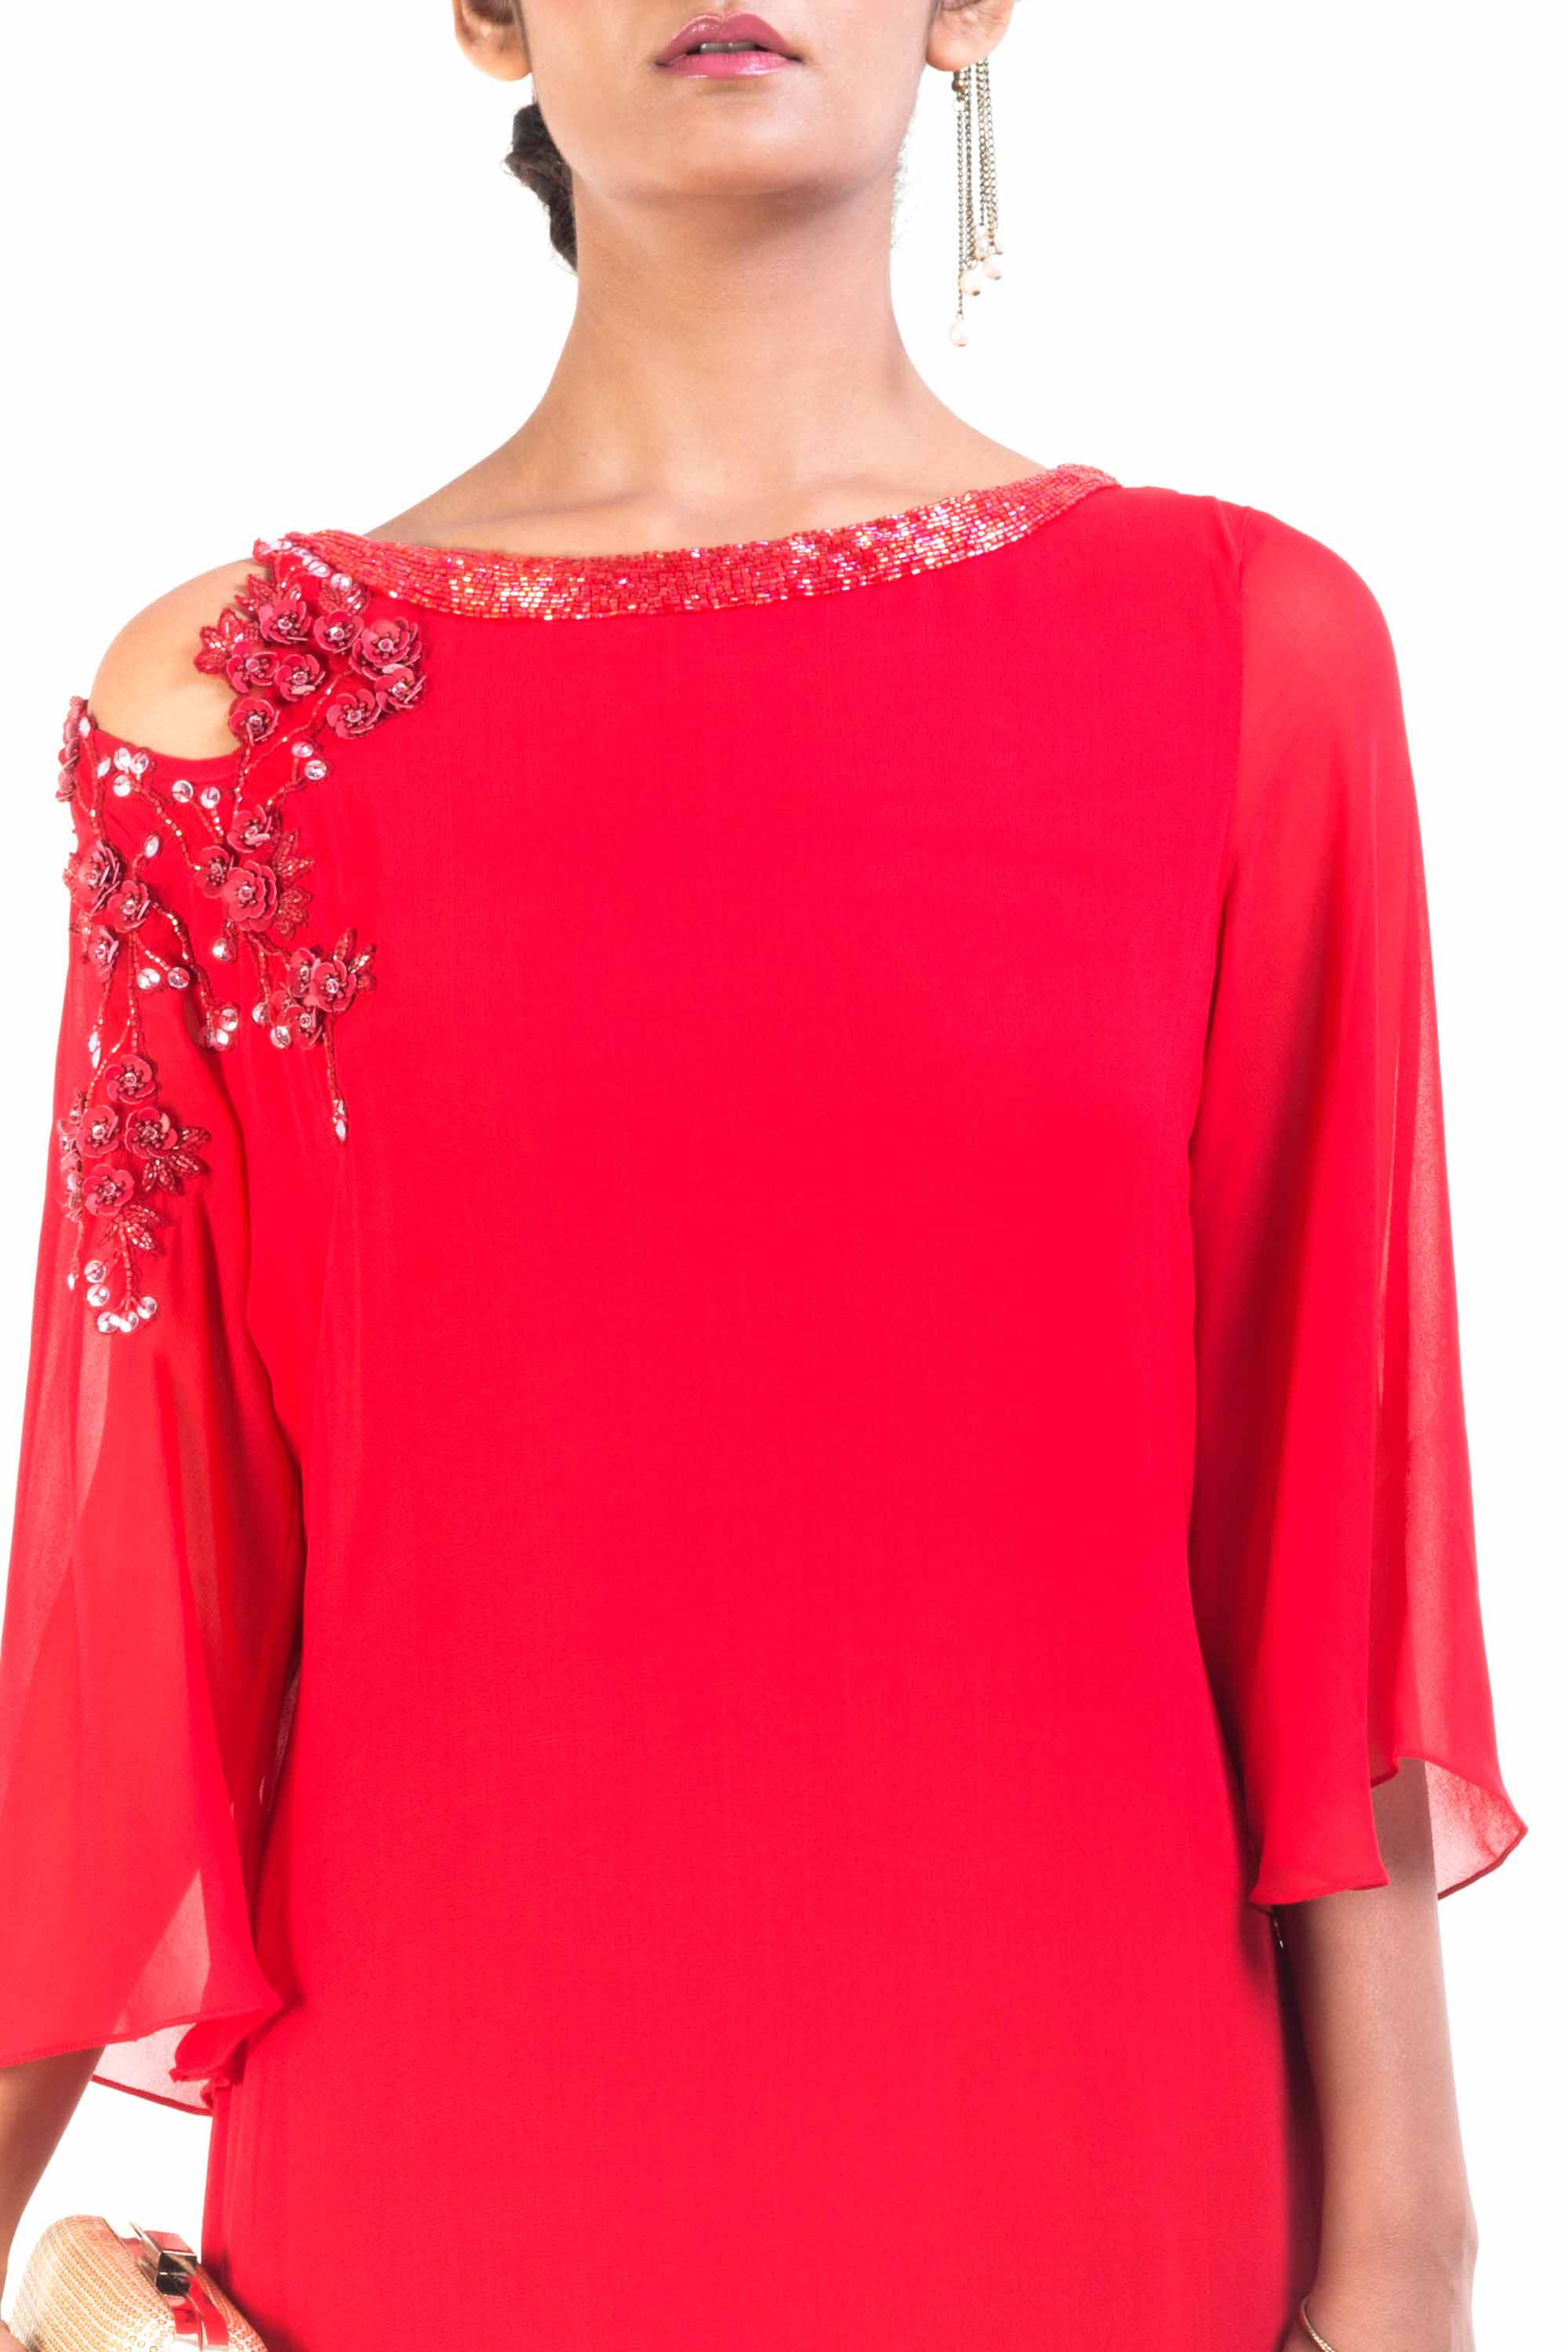 Red Cold Shoulder Asymmetrical Dress Closeup